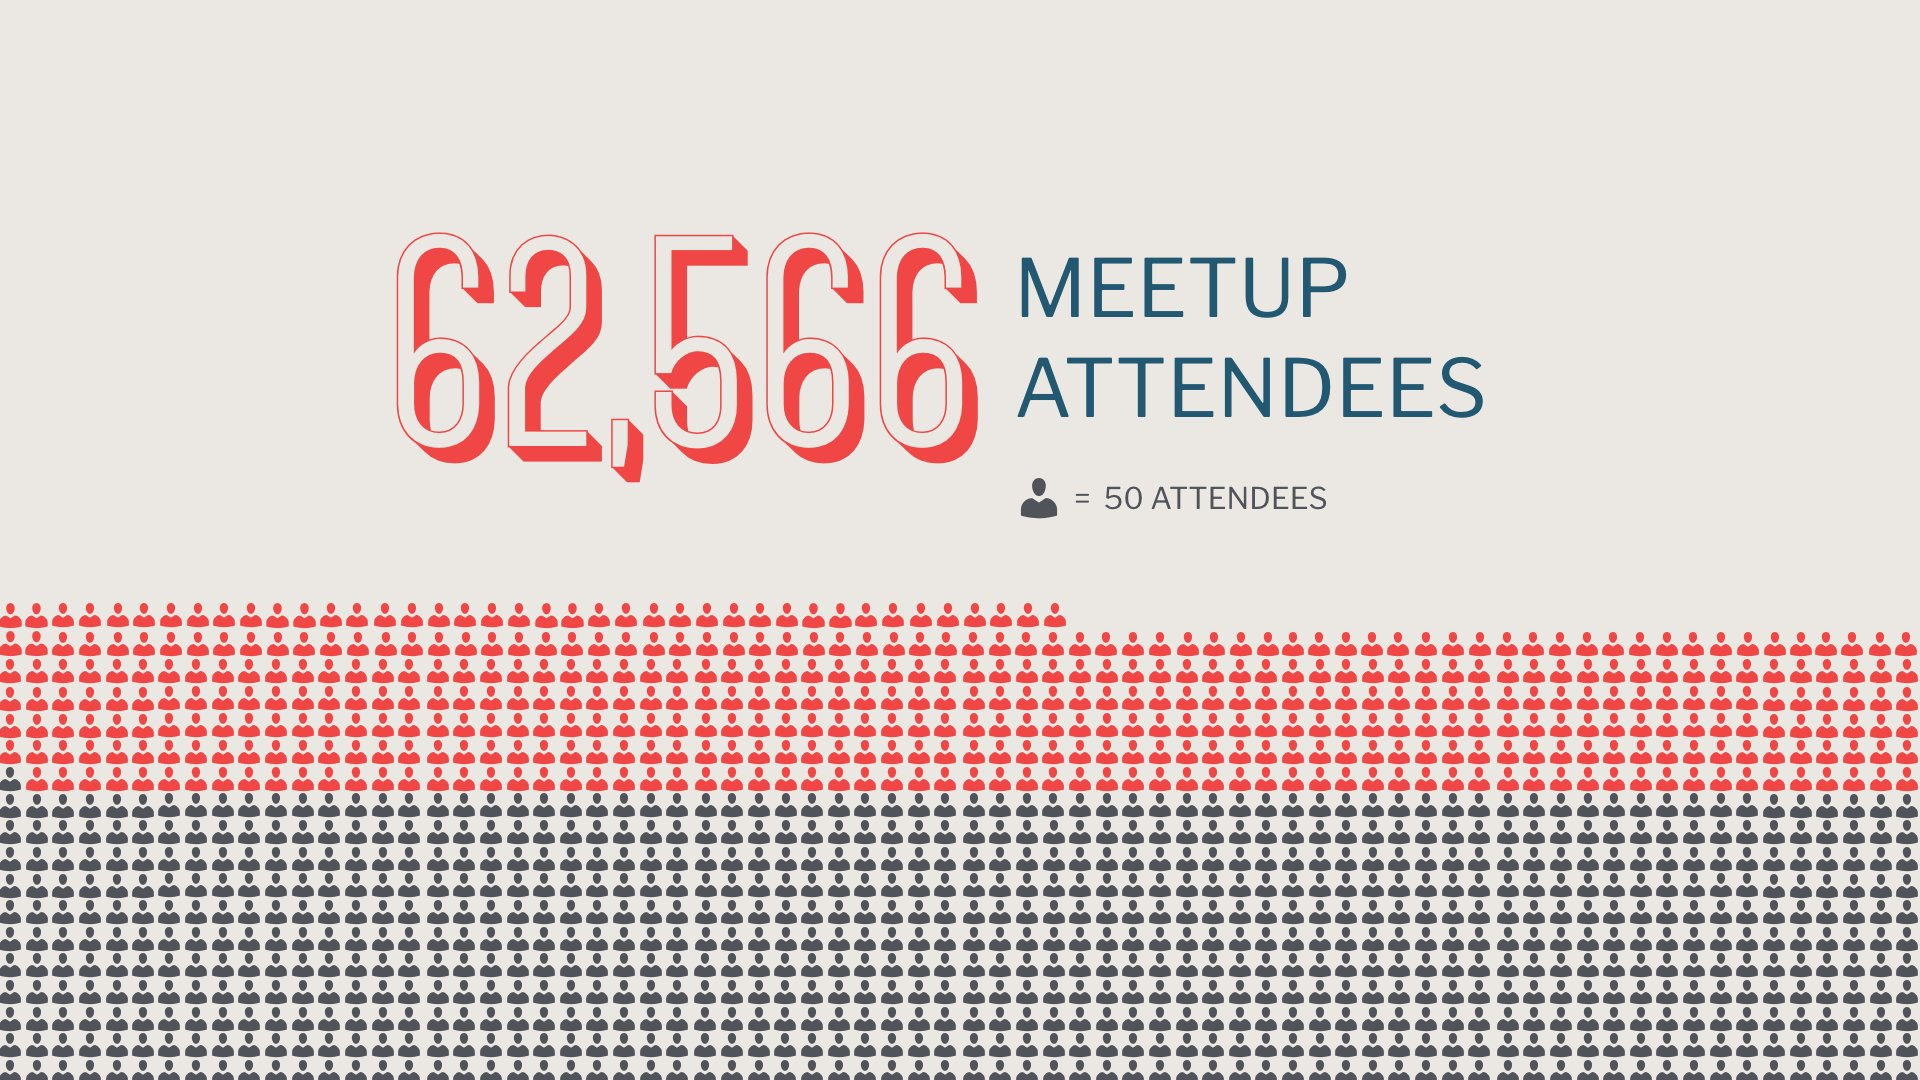 Total WordPress meetup attendees in 2016 has passed 62,500! #wcus https://t.co/eGpFV0SUQK